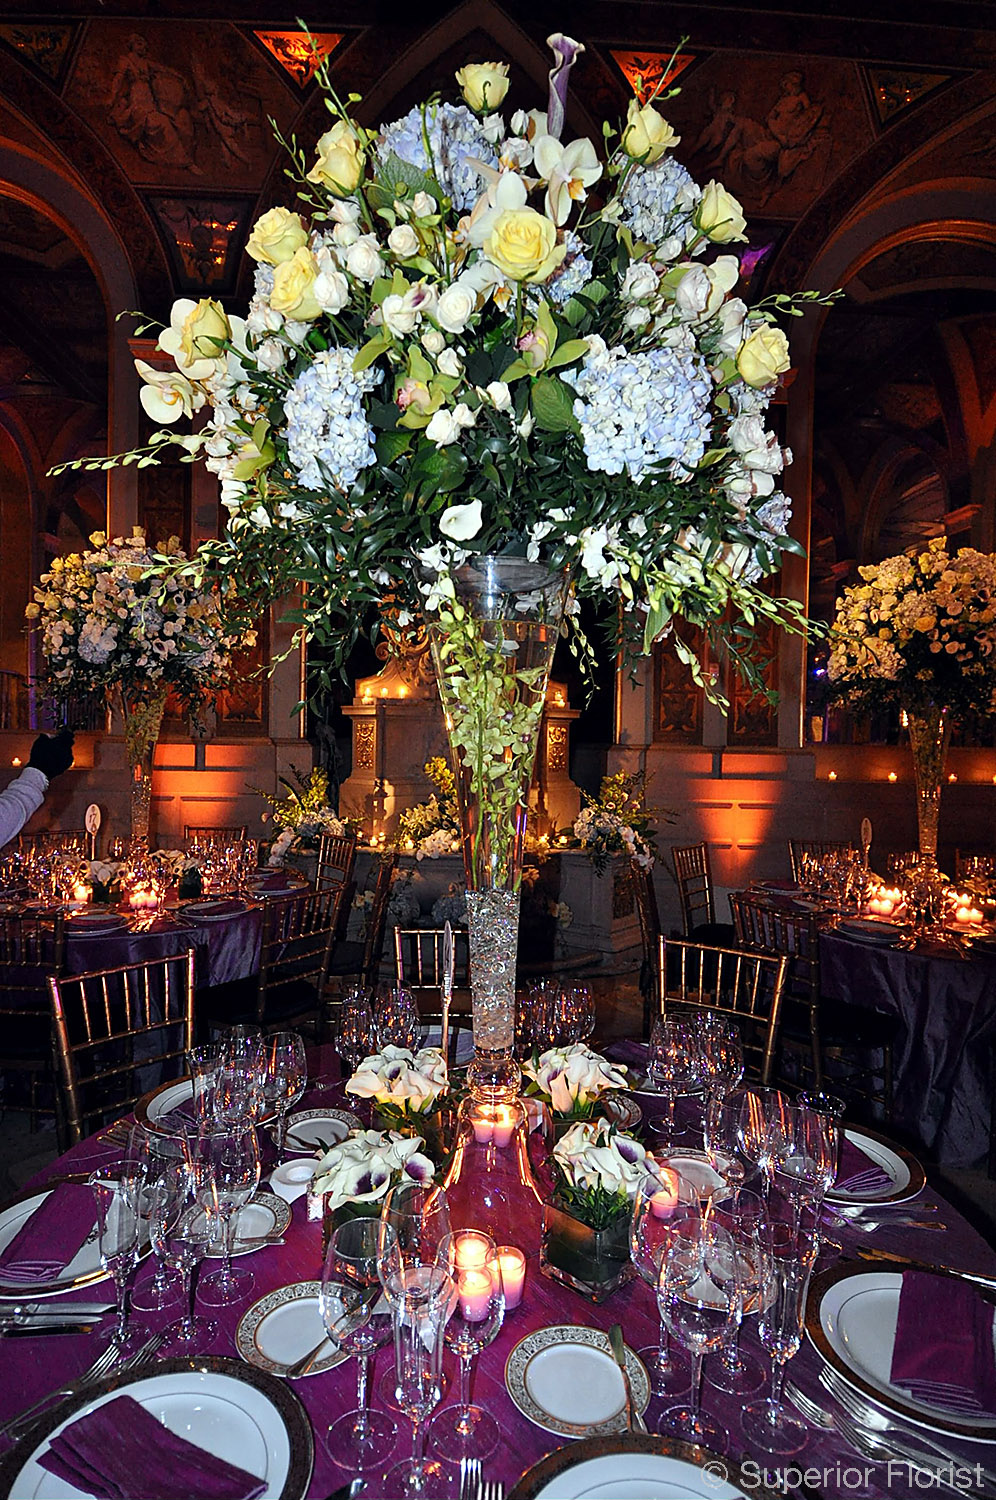 Superior Florist – Centerpieces:  An extravagant dinner table centerpiece atop a forty-inch tall glass vase. The Plaza Hotel, NYC.